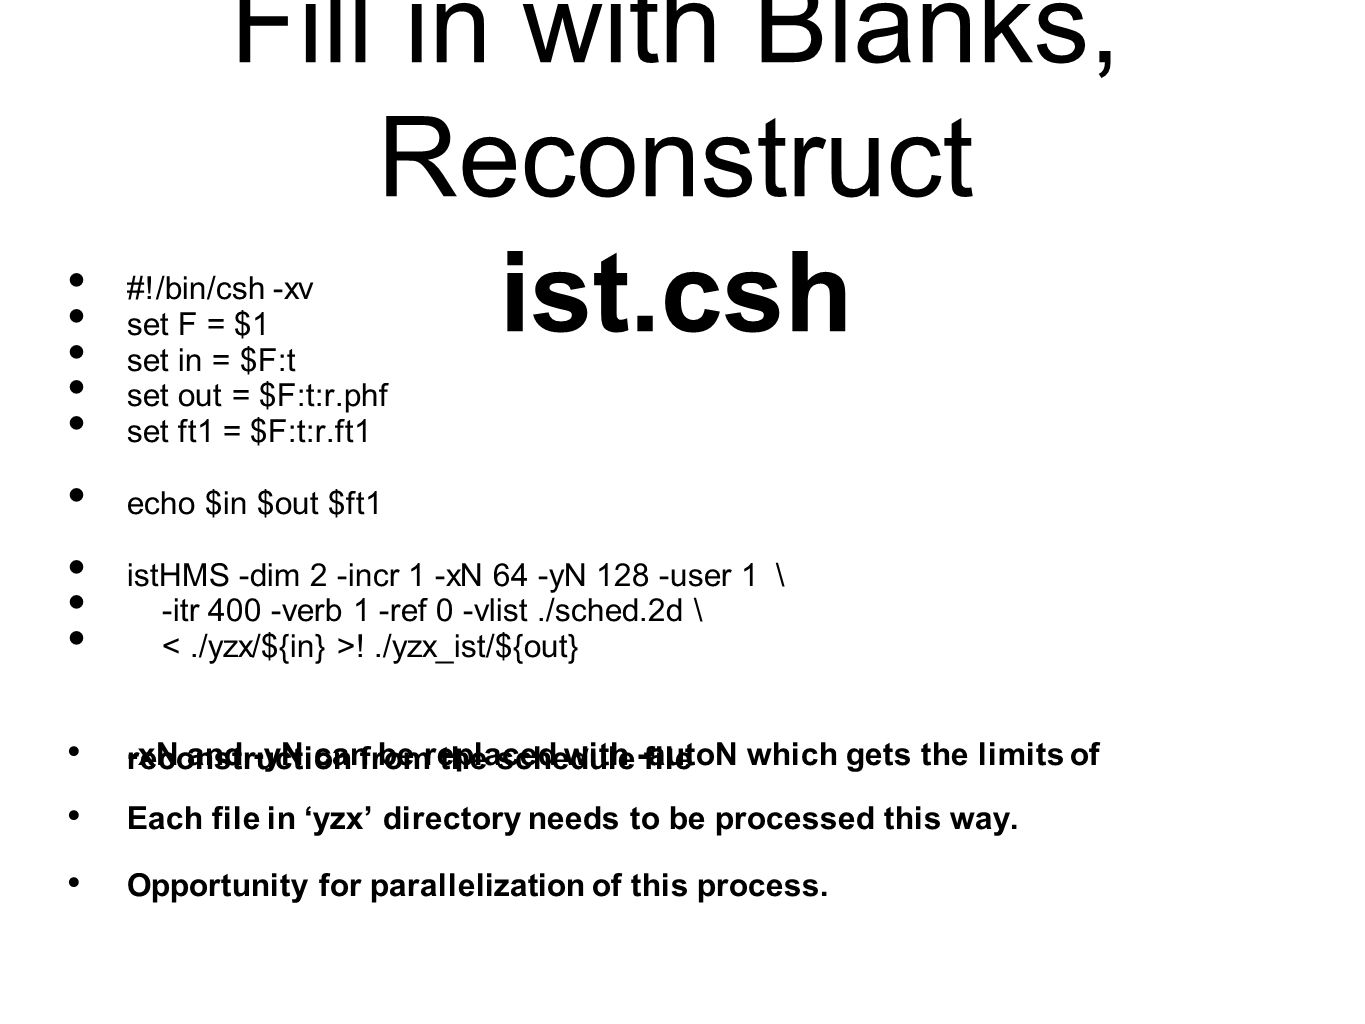 Fill in with Blanks, Reconstruct ist.csh